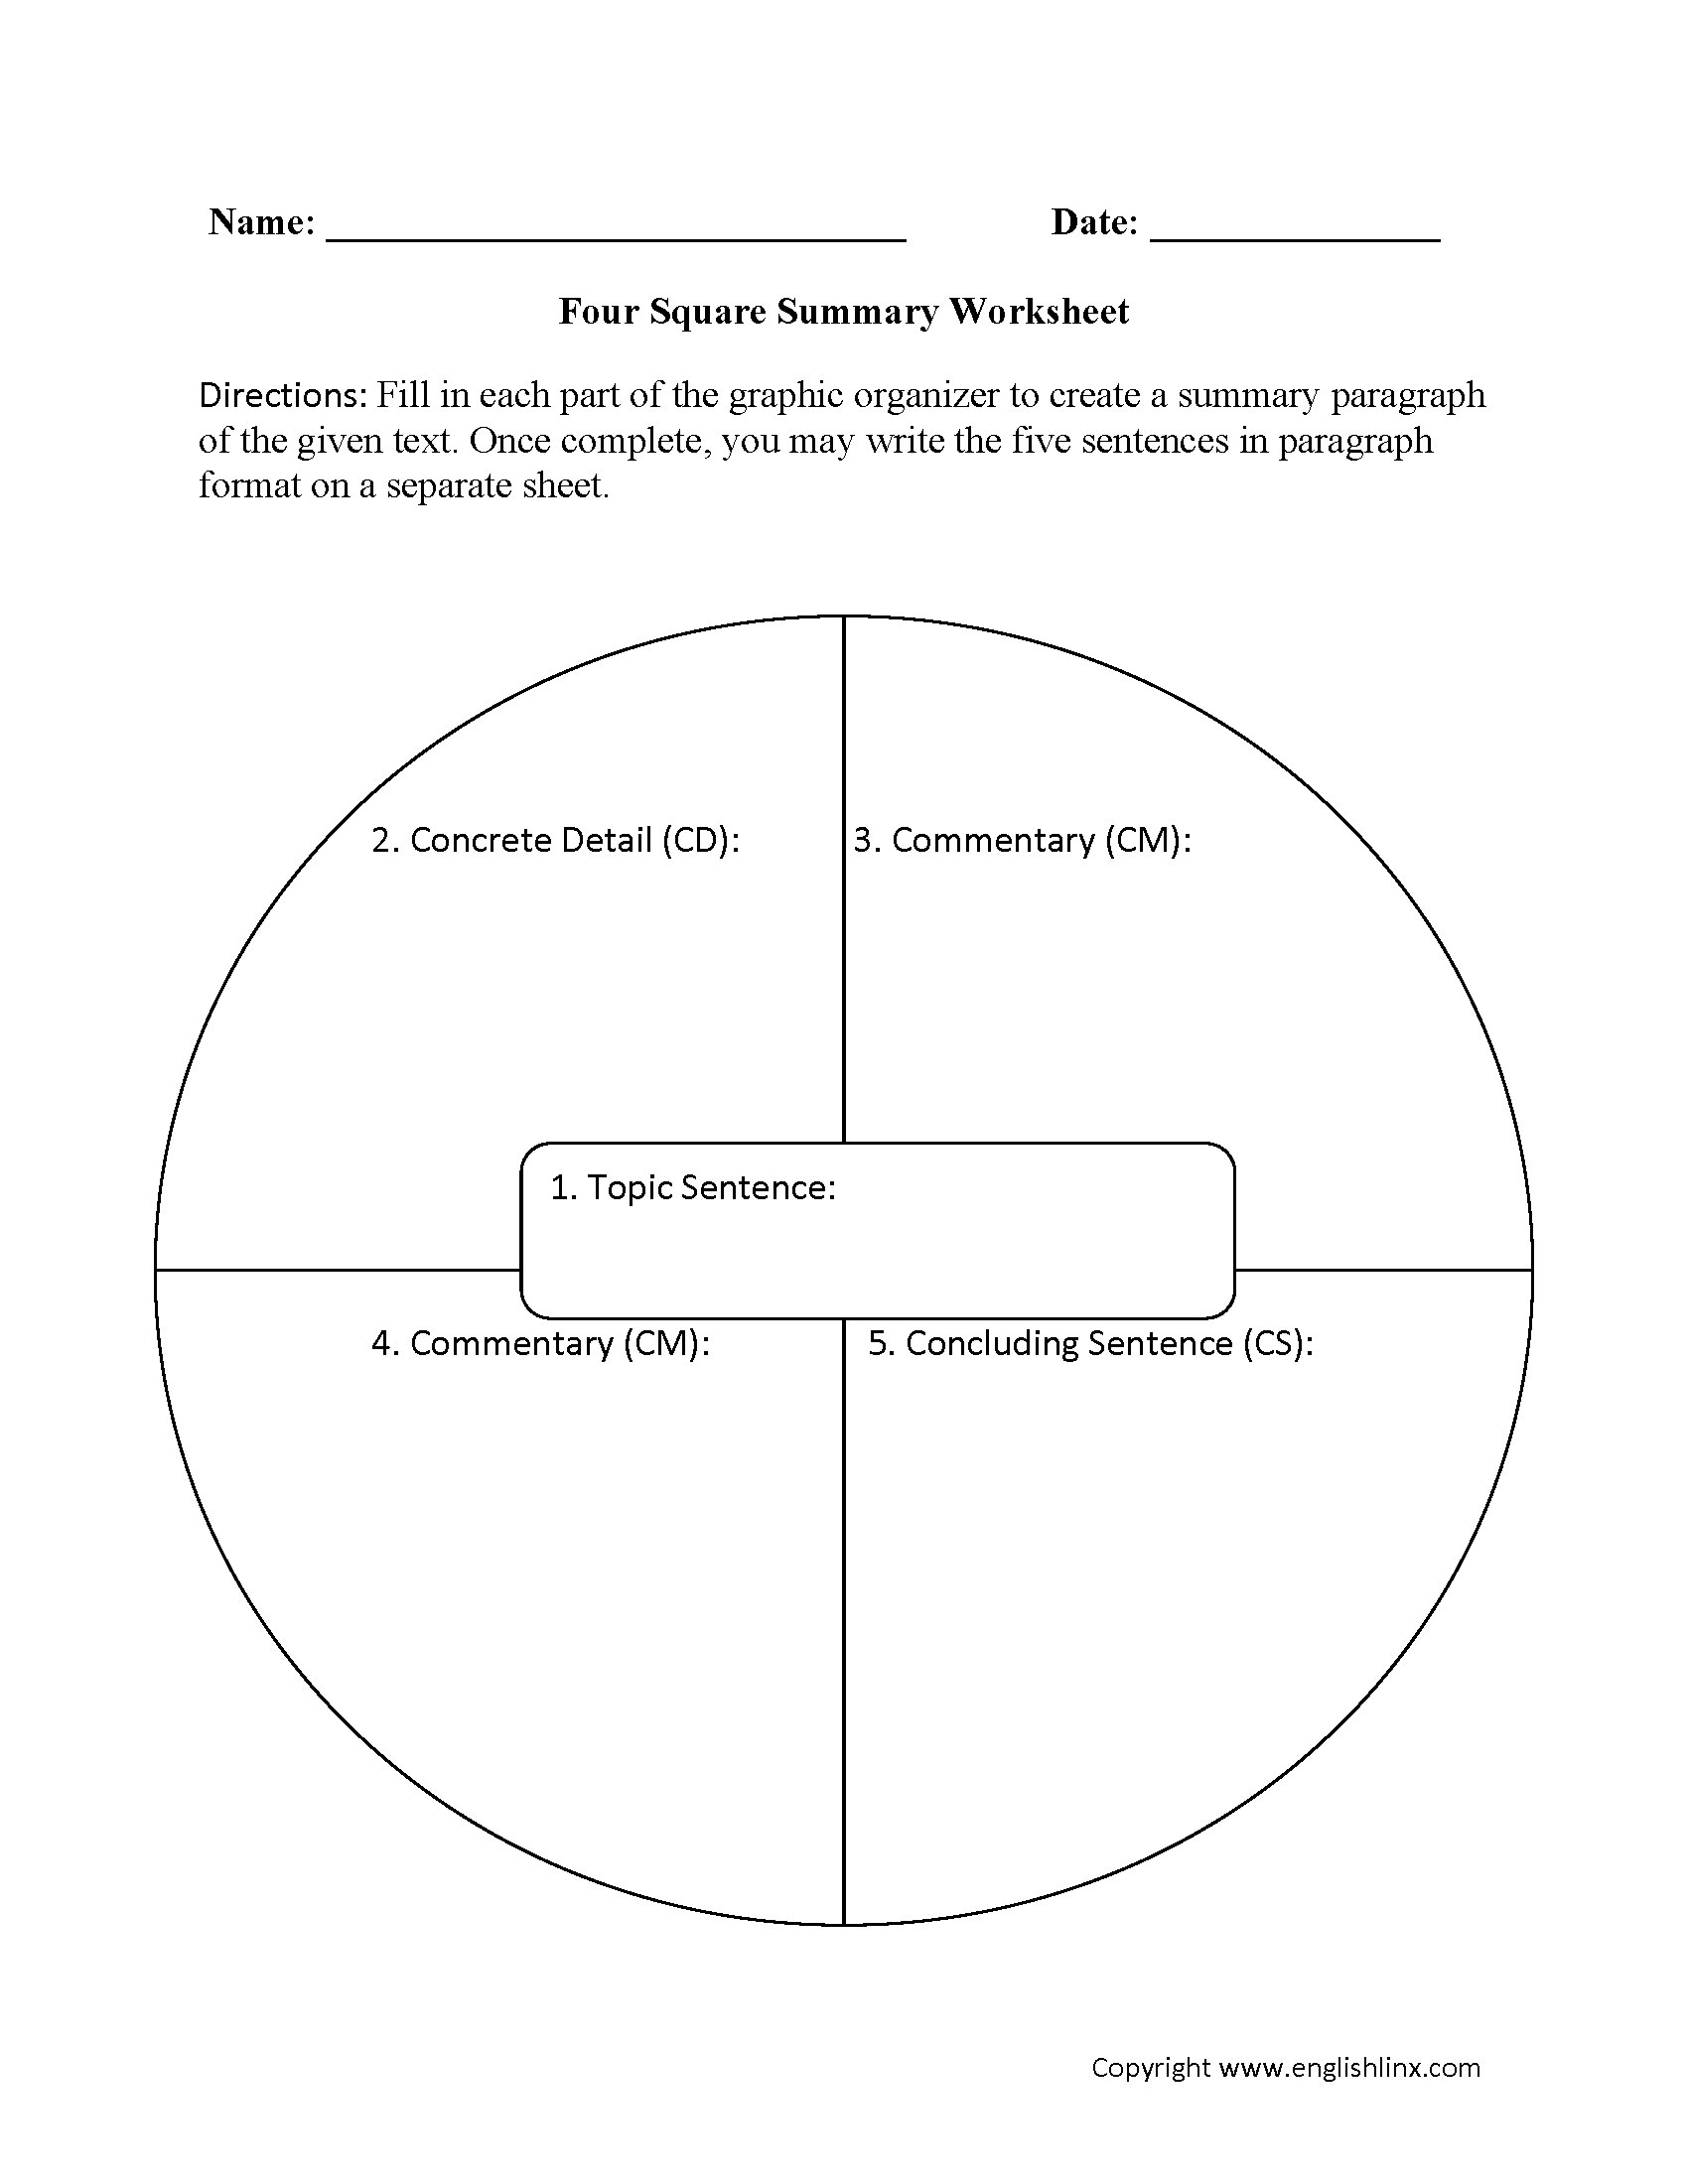 summary worksheet Download scientific diagram| summary worksheet from rfid roi assessment  tool from publication: a framework for assessing the value of rfid.